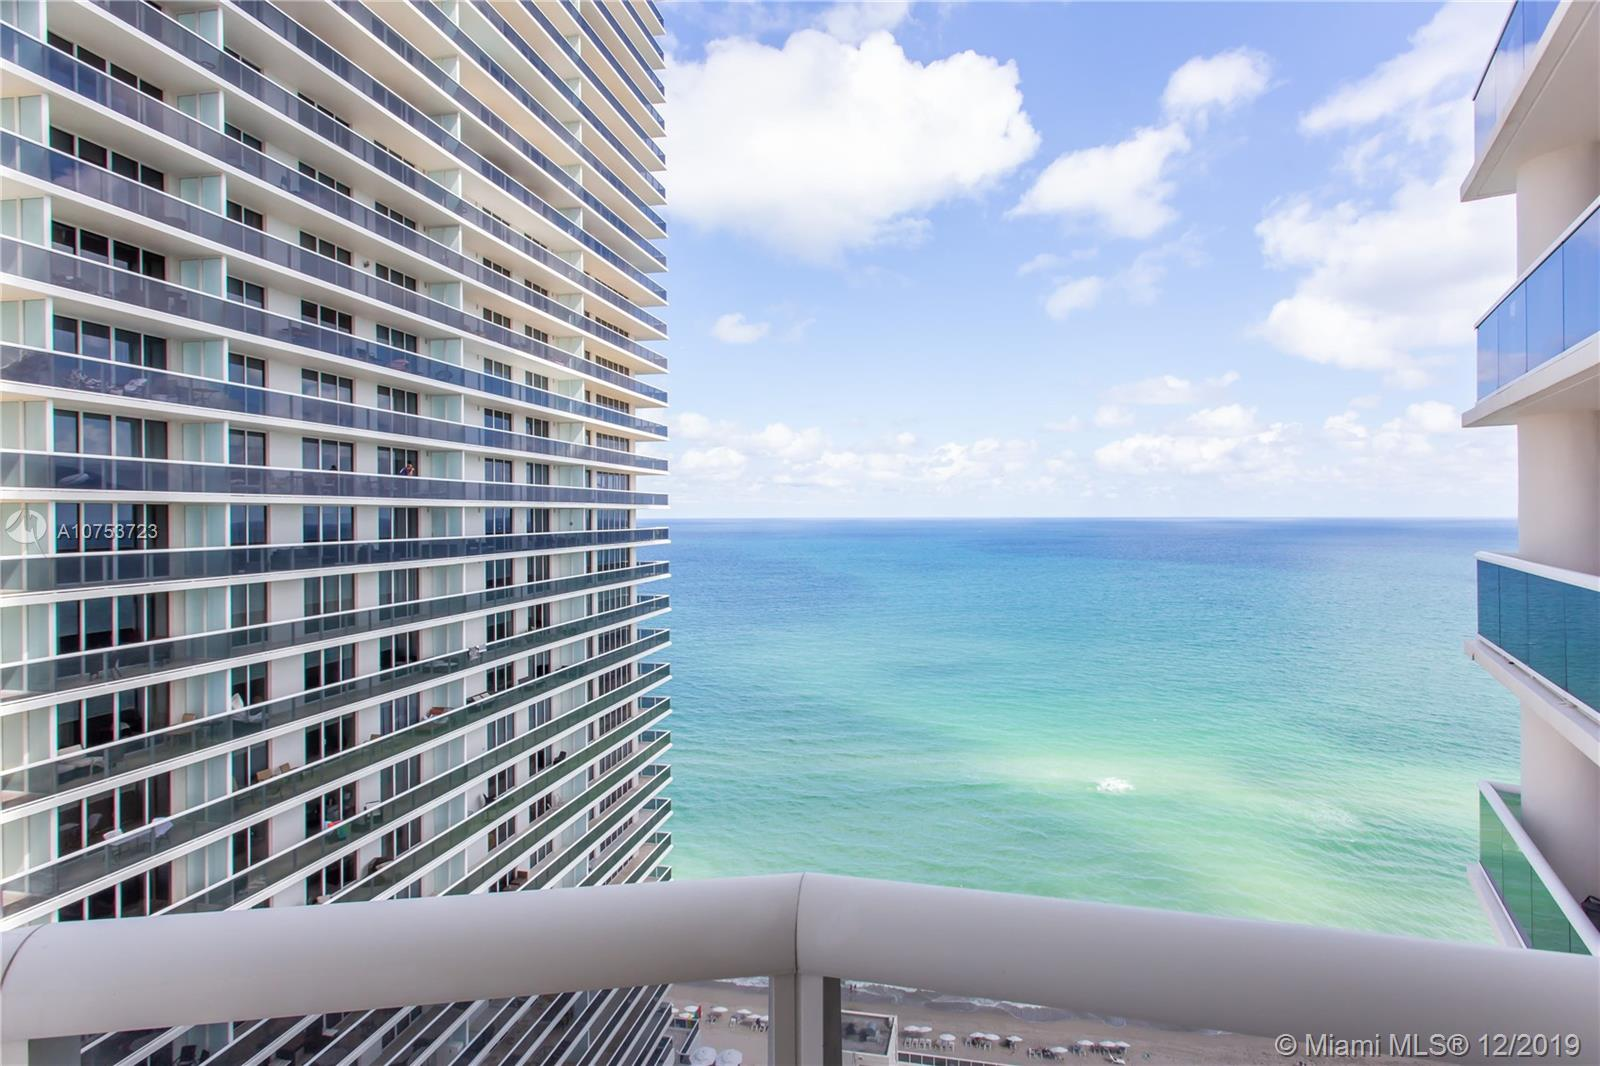 Beautiful corner unit in the best tower at the exclusive Beach Club in Hallandale. Unit features 2 extra-large bedrooms and 2 baths with a 450 SQft. wraparound balcony with spectacular Ocean and Intracoastal views. The apartment features upgraded floors, spacious walk-in closets and floor to ceiling windows that fill the unit with sunlight and ocean views. The Beach Club offers a 5-star resort lifestyle with expansive infinity pools facing the ocean, 50,000+ SQft spa and gym overlooking the ocean, restaurants and beach service. Building also offers valet parking, concierge, business center and much more. Great location close to shopping centers, Aventura Mall, Ft Lauderdale International Airport, and main highways.